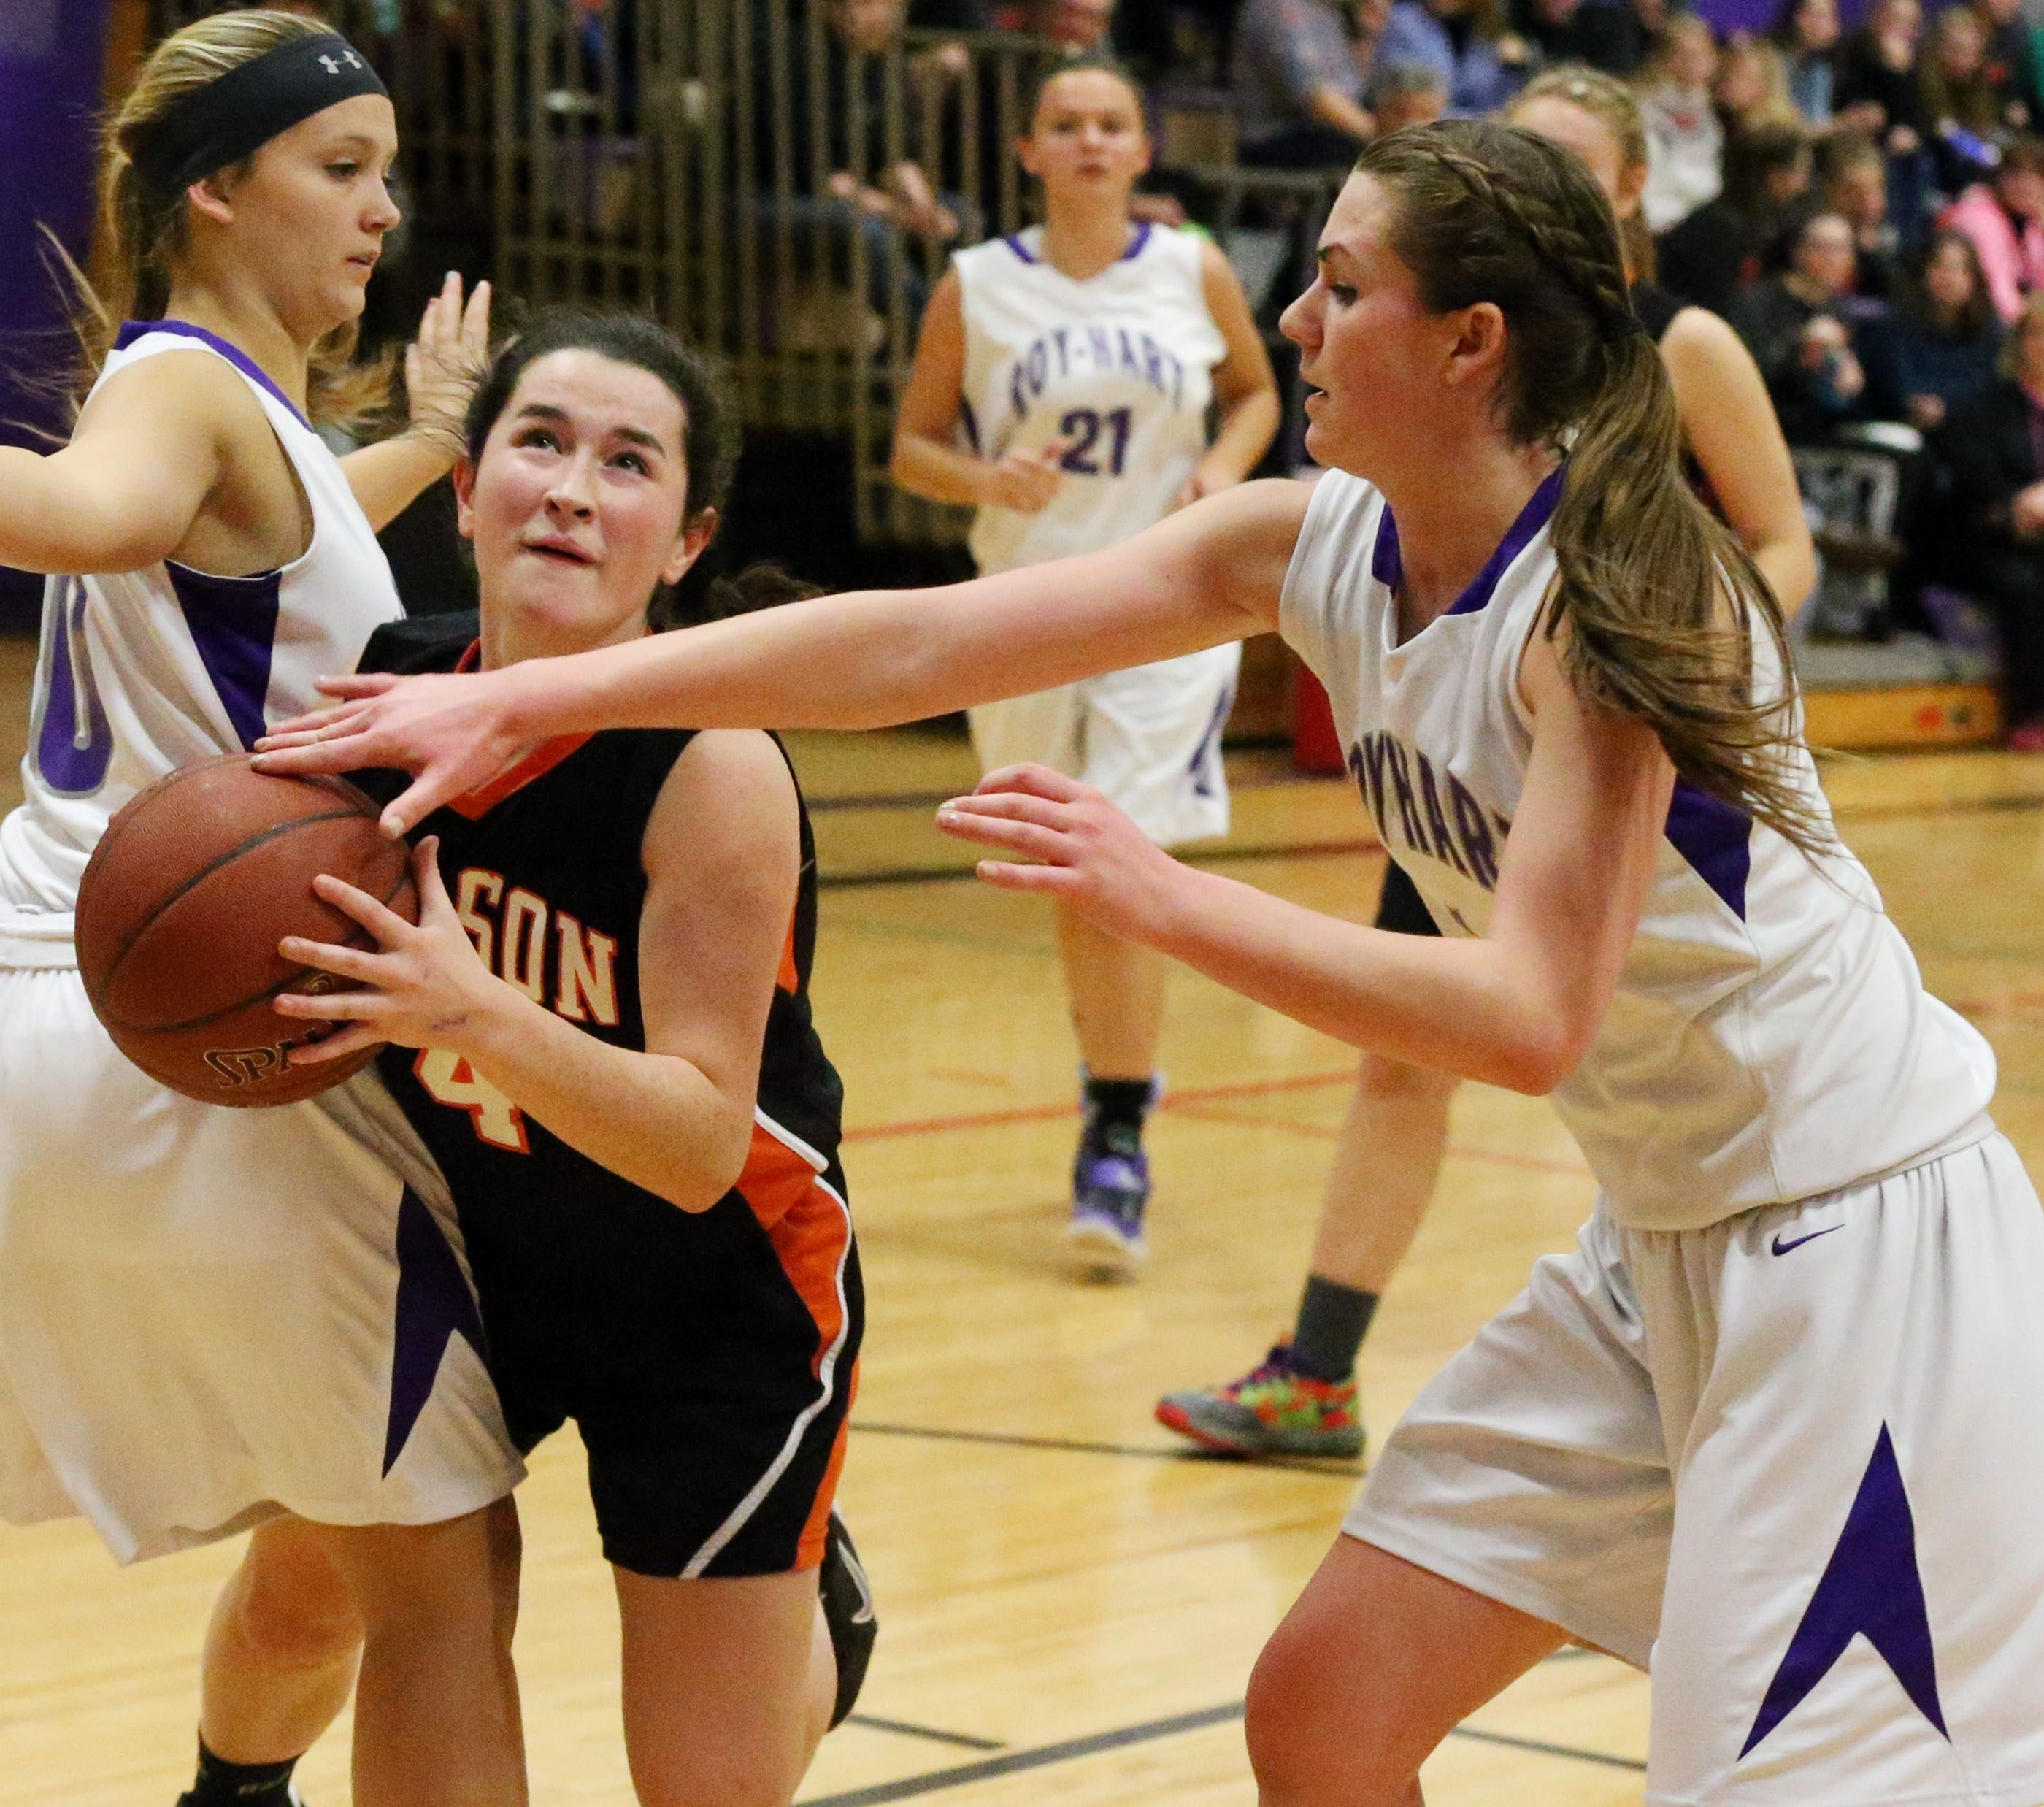 Emma Lindke of Roy-Hart, right, defends against Wilson's Jennifer Darlak during what would be the Wilson Lakewomen's 50th straight Niagara-Orleans victory.